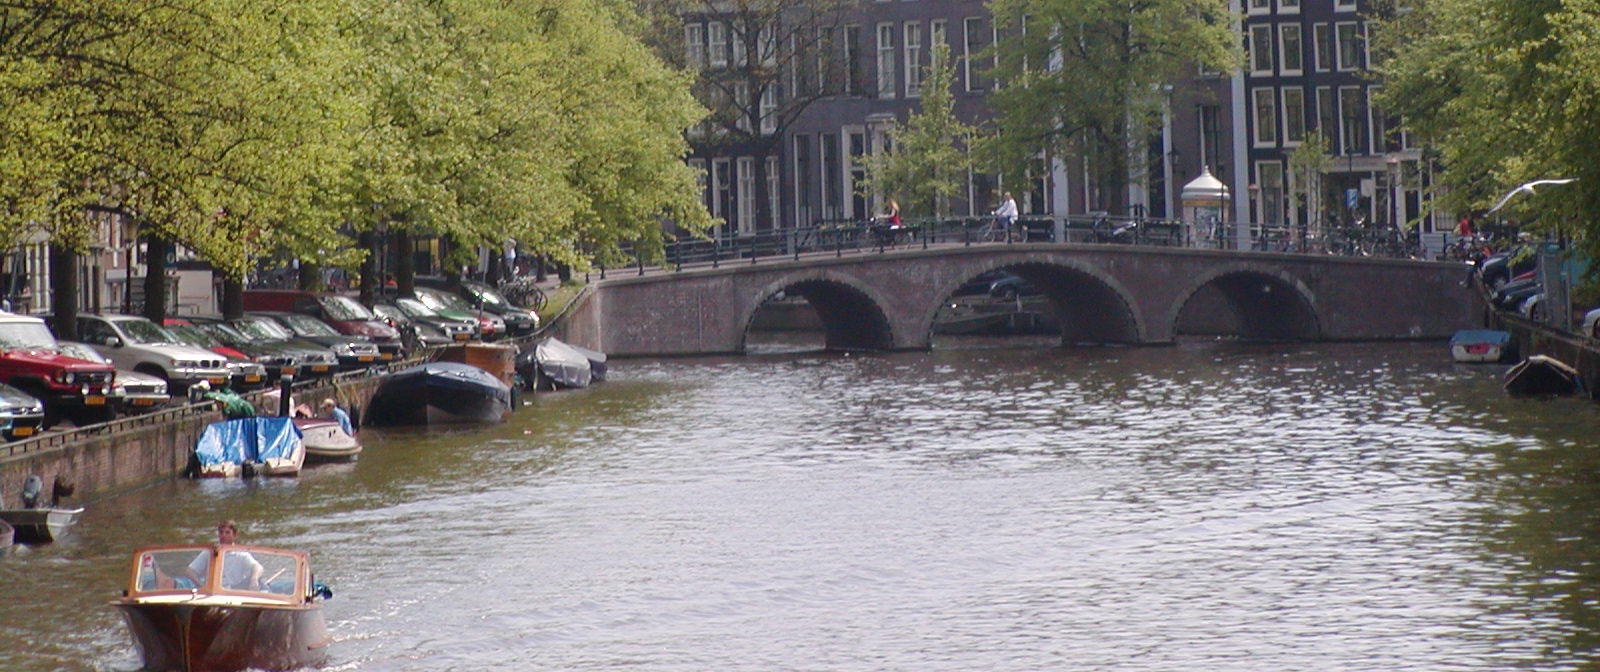 A photograph overlooking a canal in Amsterdam